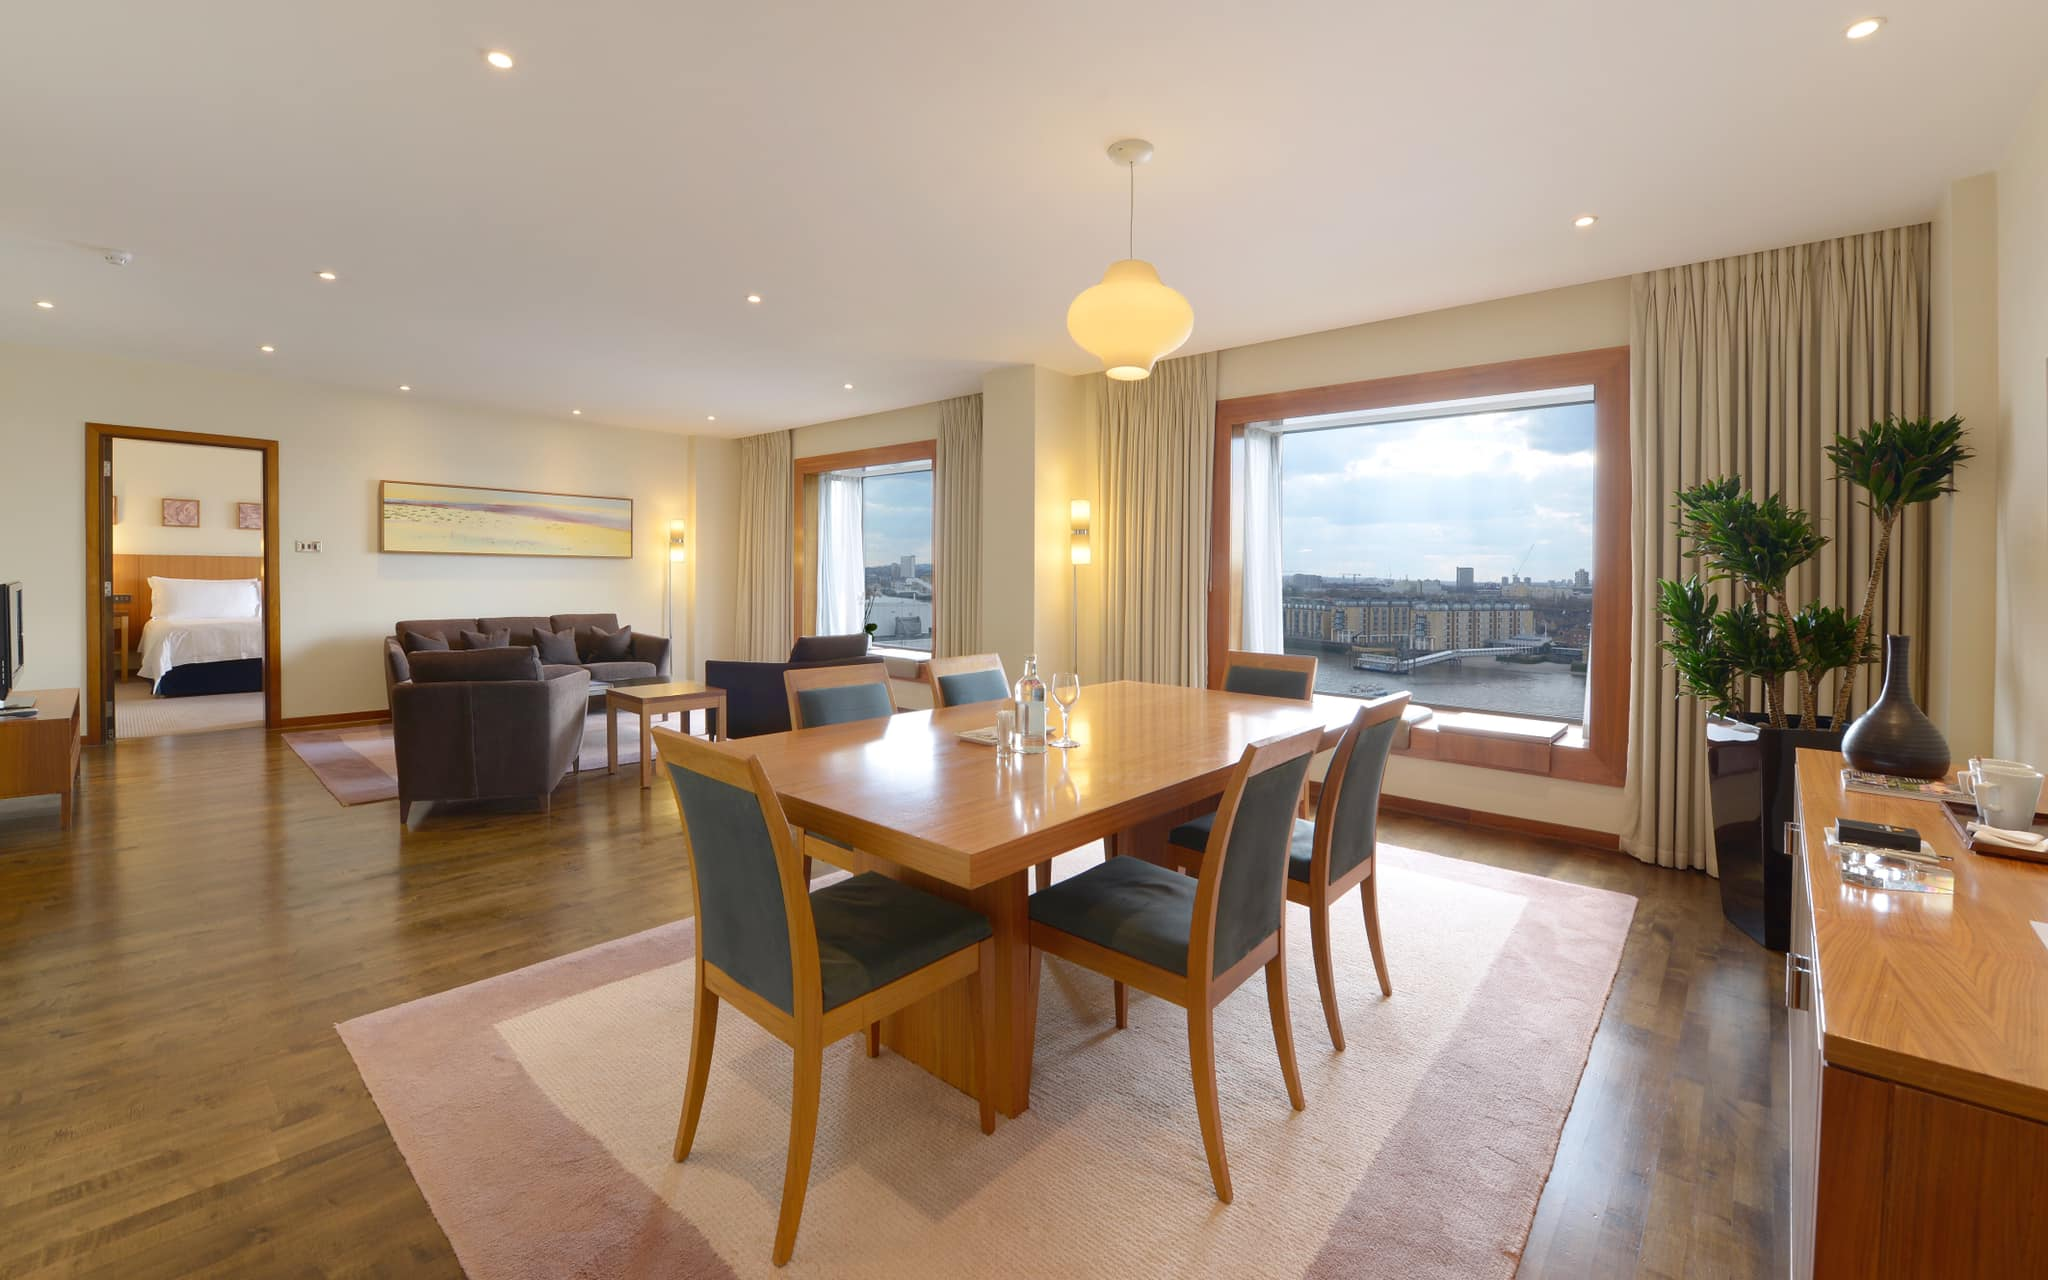 Canary Riverside Plaza penthouse suite ivew over River Thames of top luxury hotels in Canary Wharf